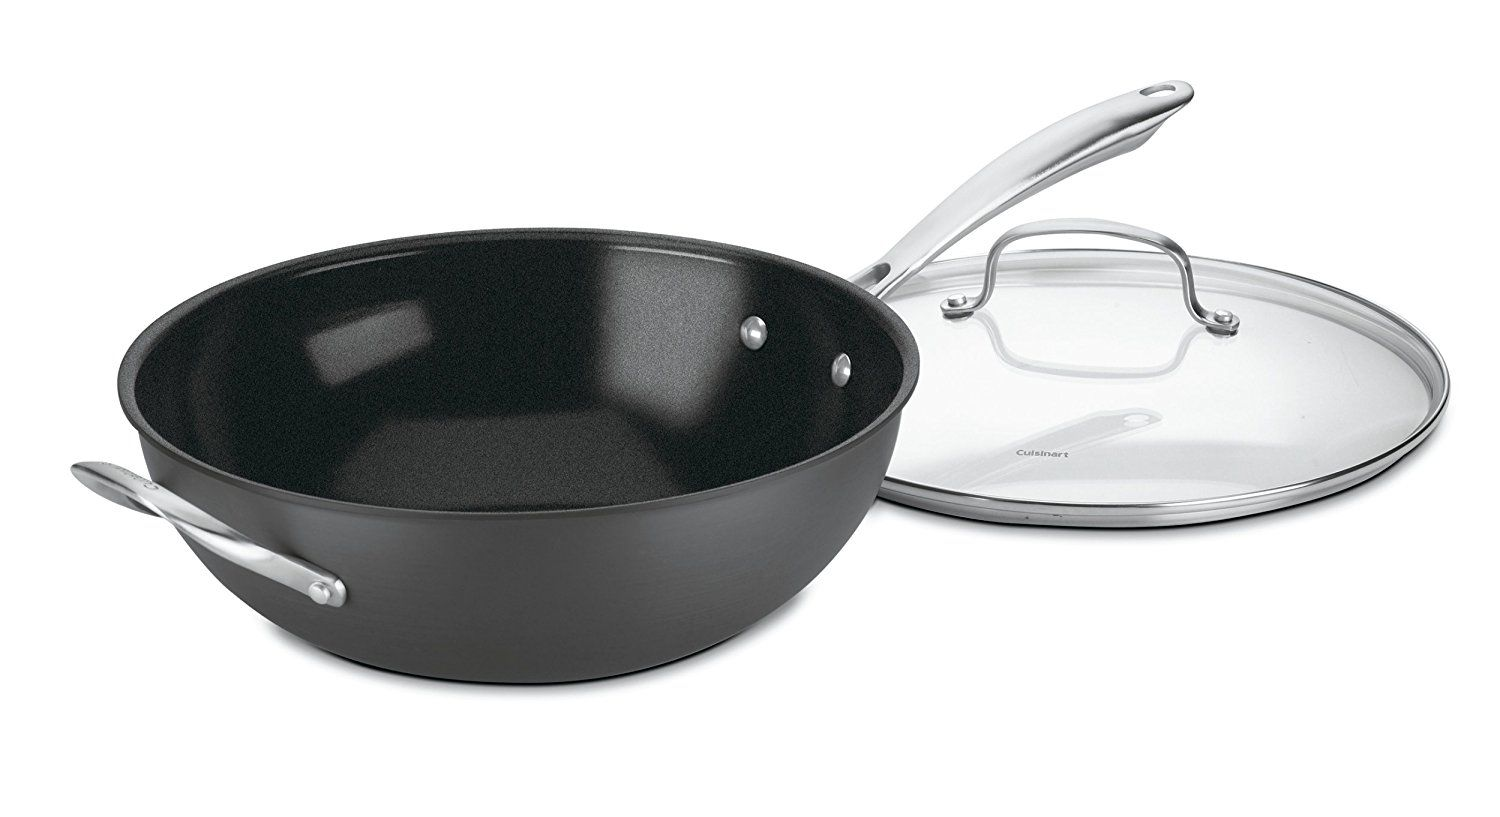 Cuisinart Gg26 30h Greengourmet Hard Anodized Nonstick Stir Fry Wok With Glass Cover You Can Find More Det Stir Fry Wok Hard Anodized Cookware Stir Fry Pan